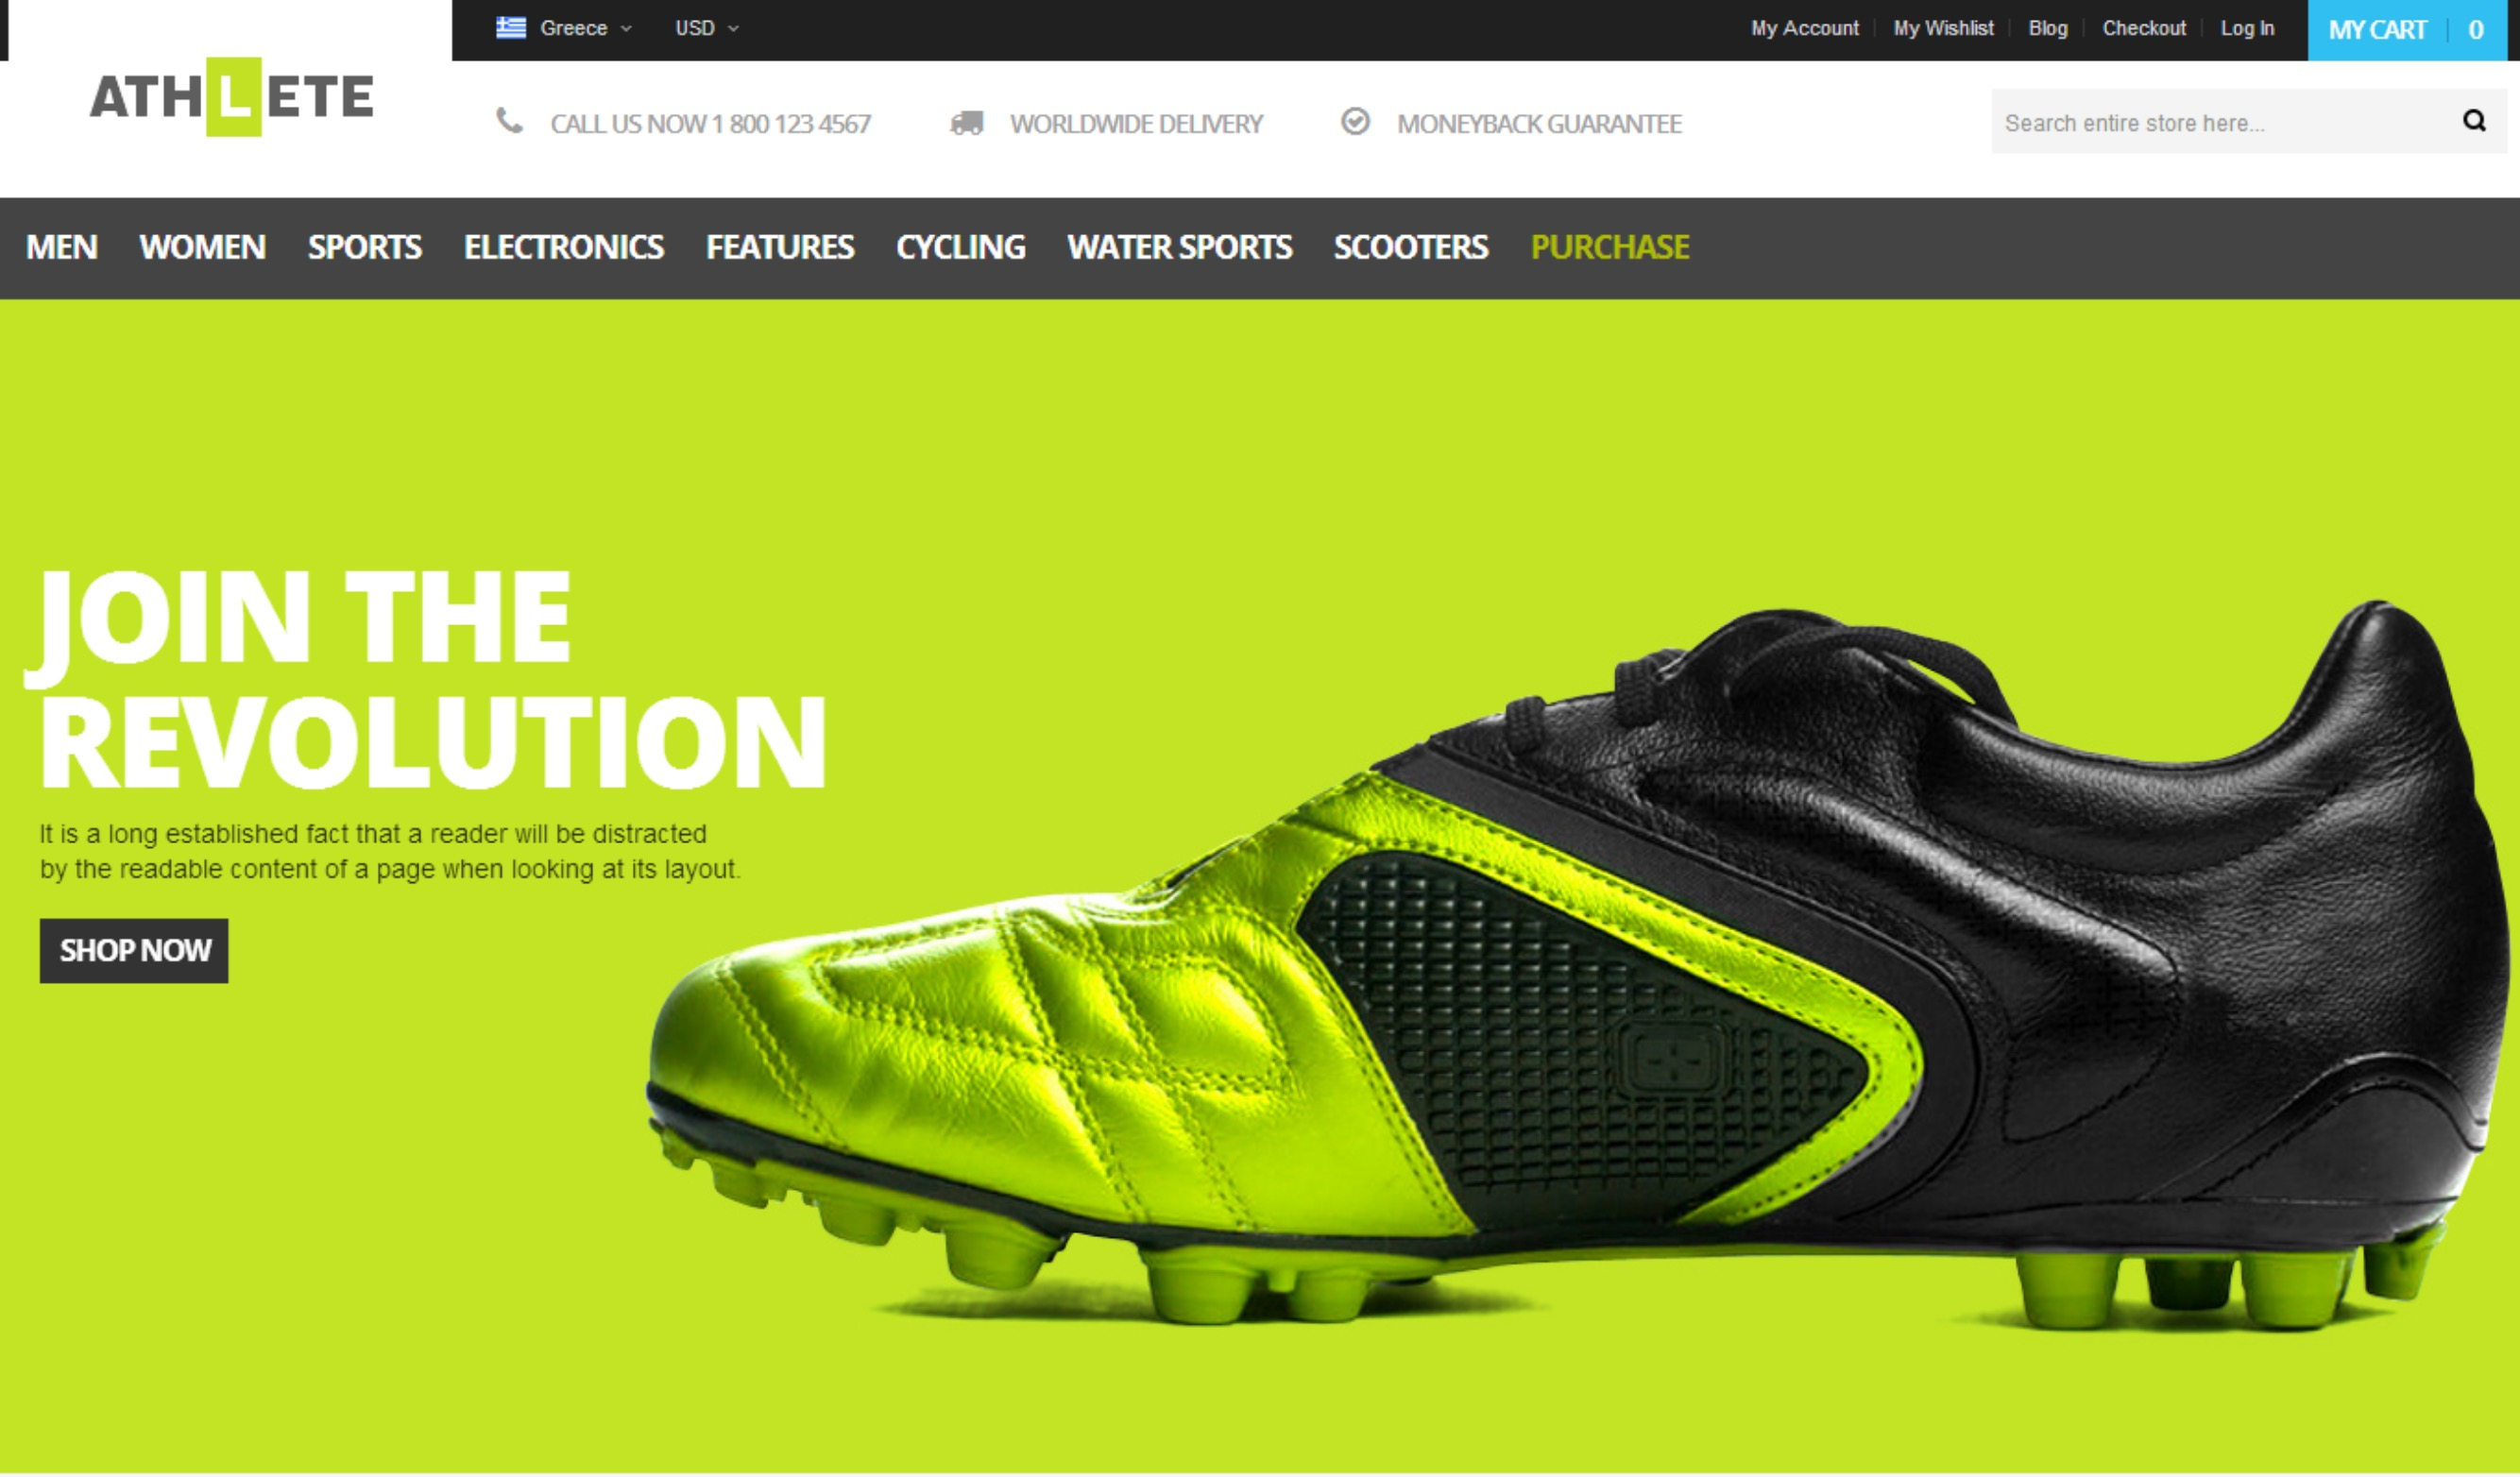 The Athlete – A Fluidly Responsive Template